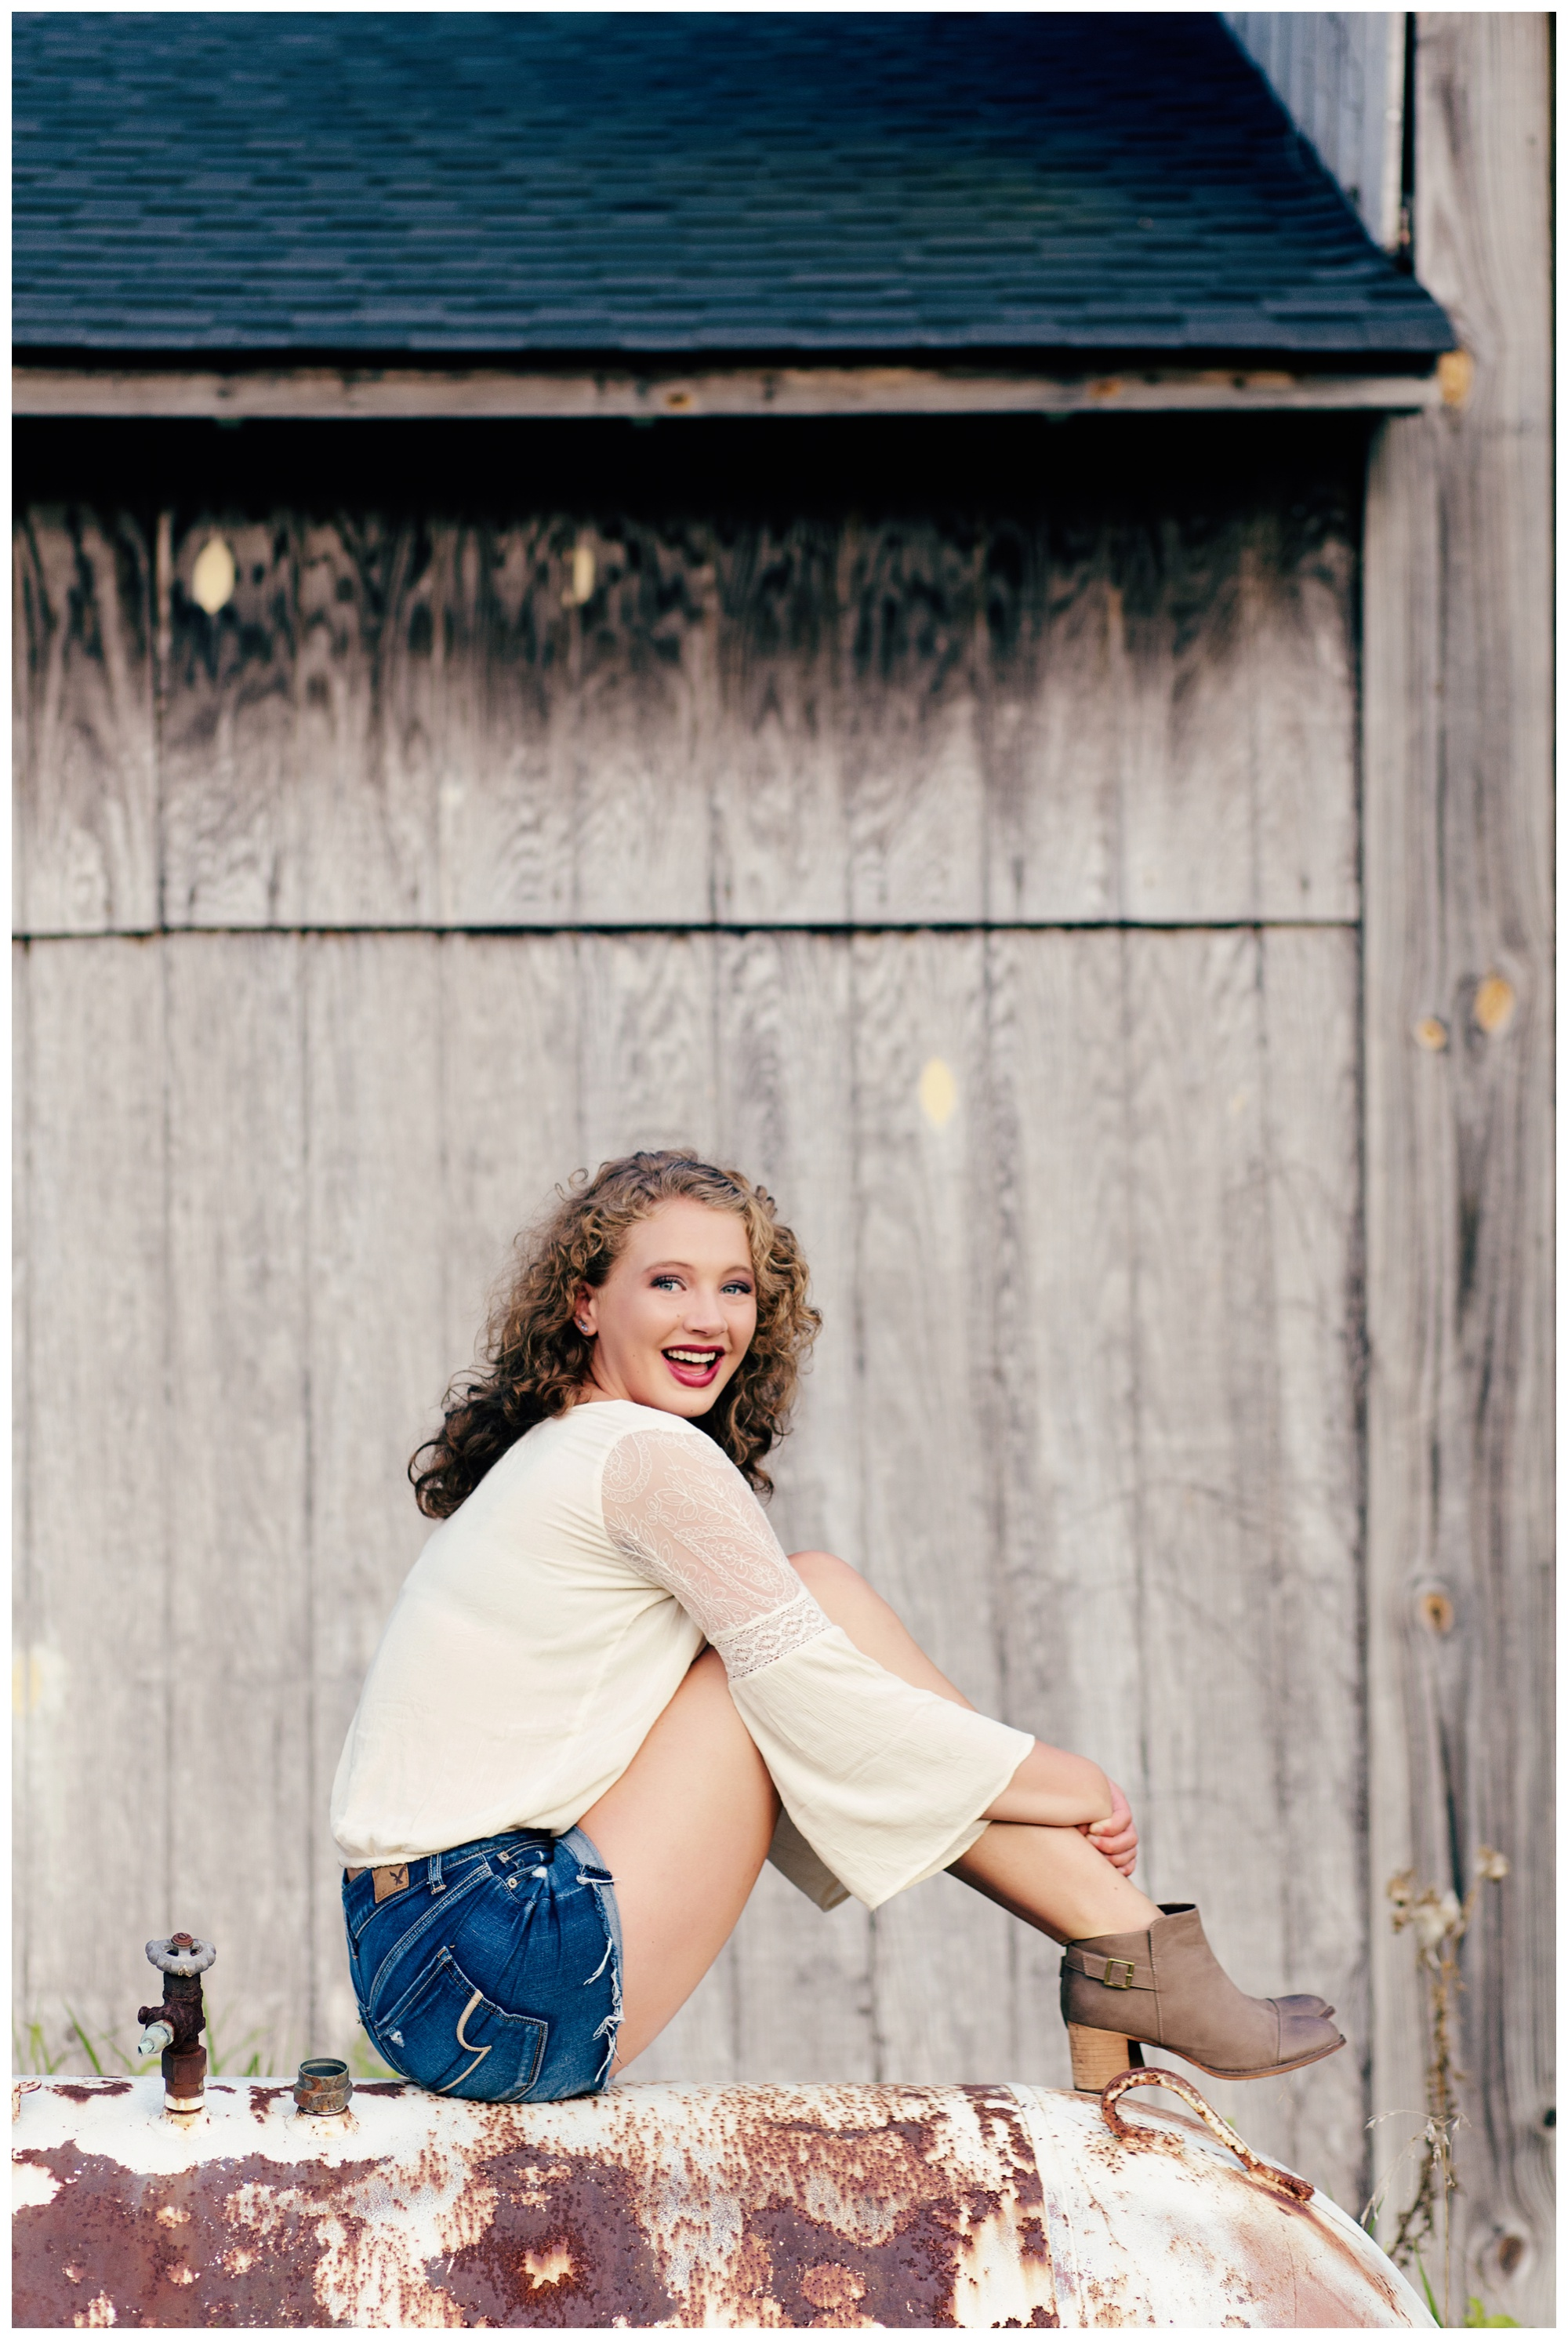 Ashleigh S Gorgeous Senior Pictures Louisville Senior Portrait Photographer Avery S Photography